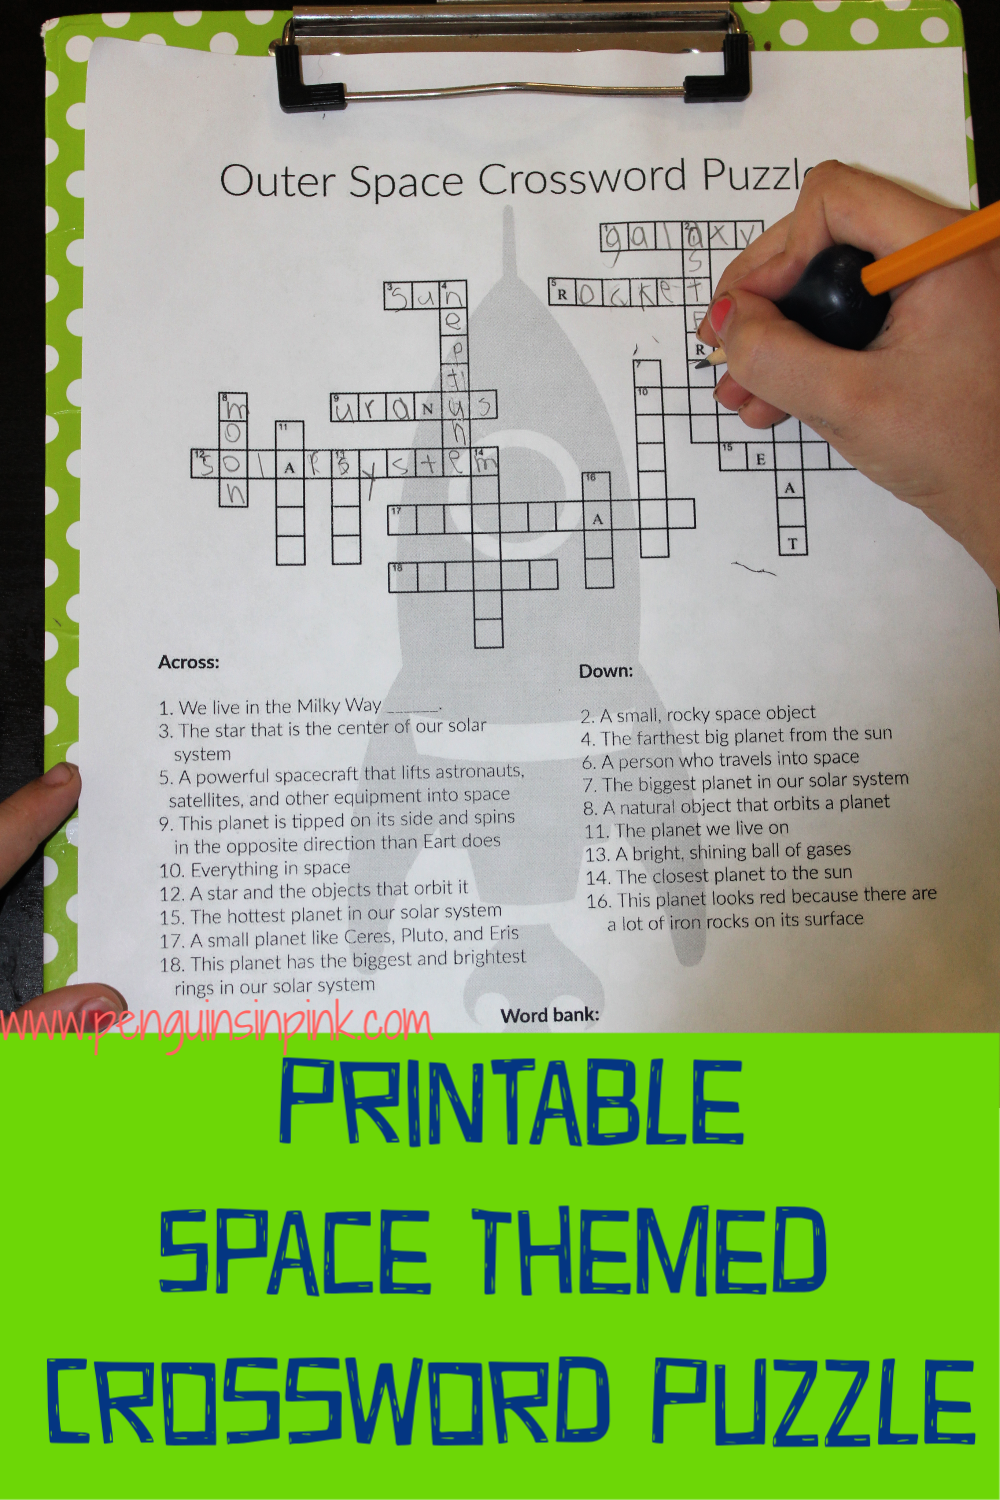 This FREE Printable Space Themed Crossword Puzzle is an easy way to help kids review their space knowledge or learn something new. The crossword puzzle is available either with a word bank or without one. An answer key is also included.